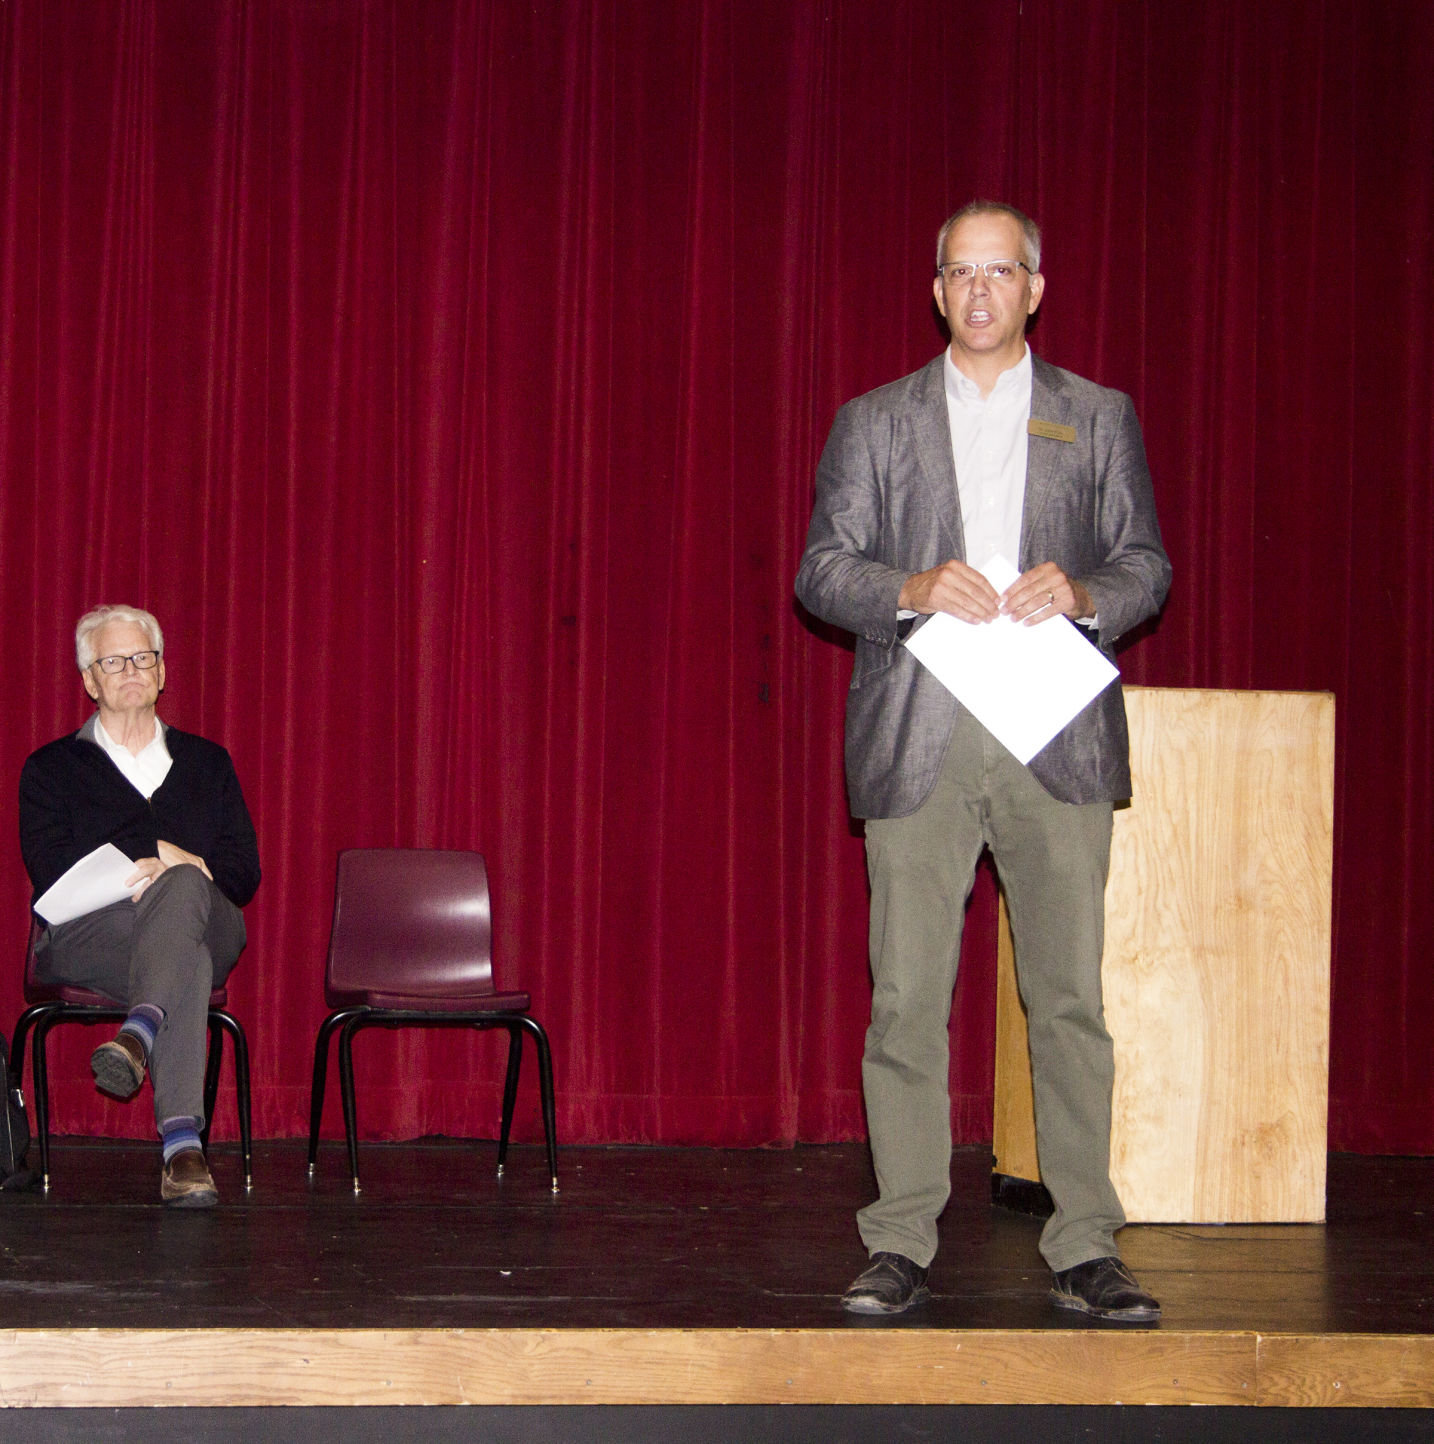 From left, Salish Coast Elementary Project Manager Kirk Robinson, left, looks on as Port Townsend School District Superintendent John Polm answers questions from parents and community members at the Port Townsend High School Auditorium on Aug. 30.